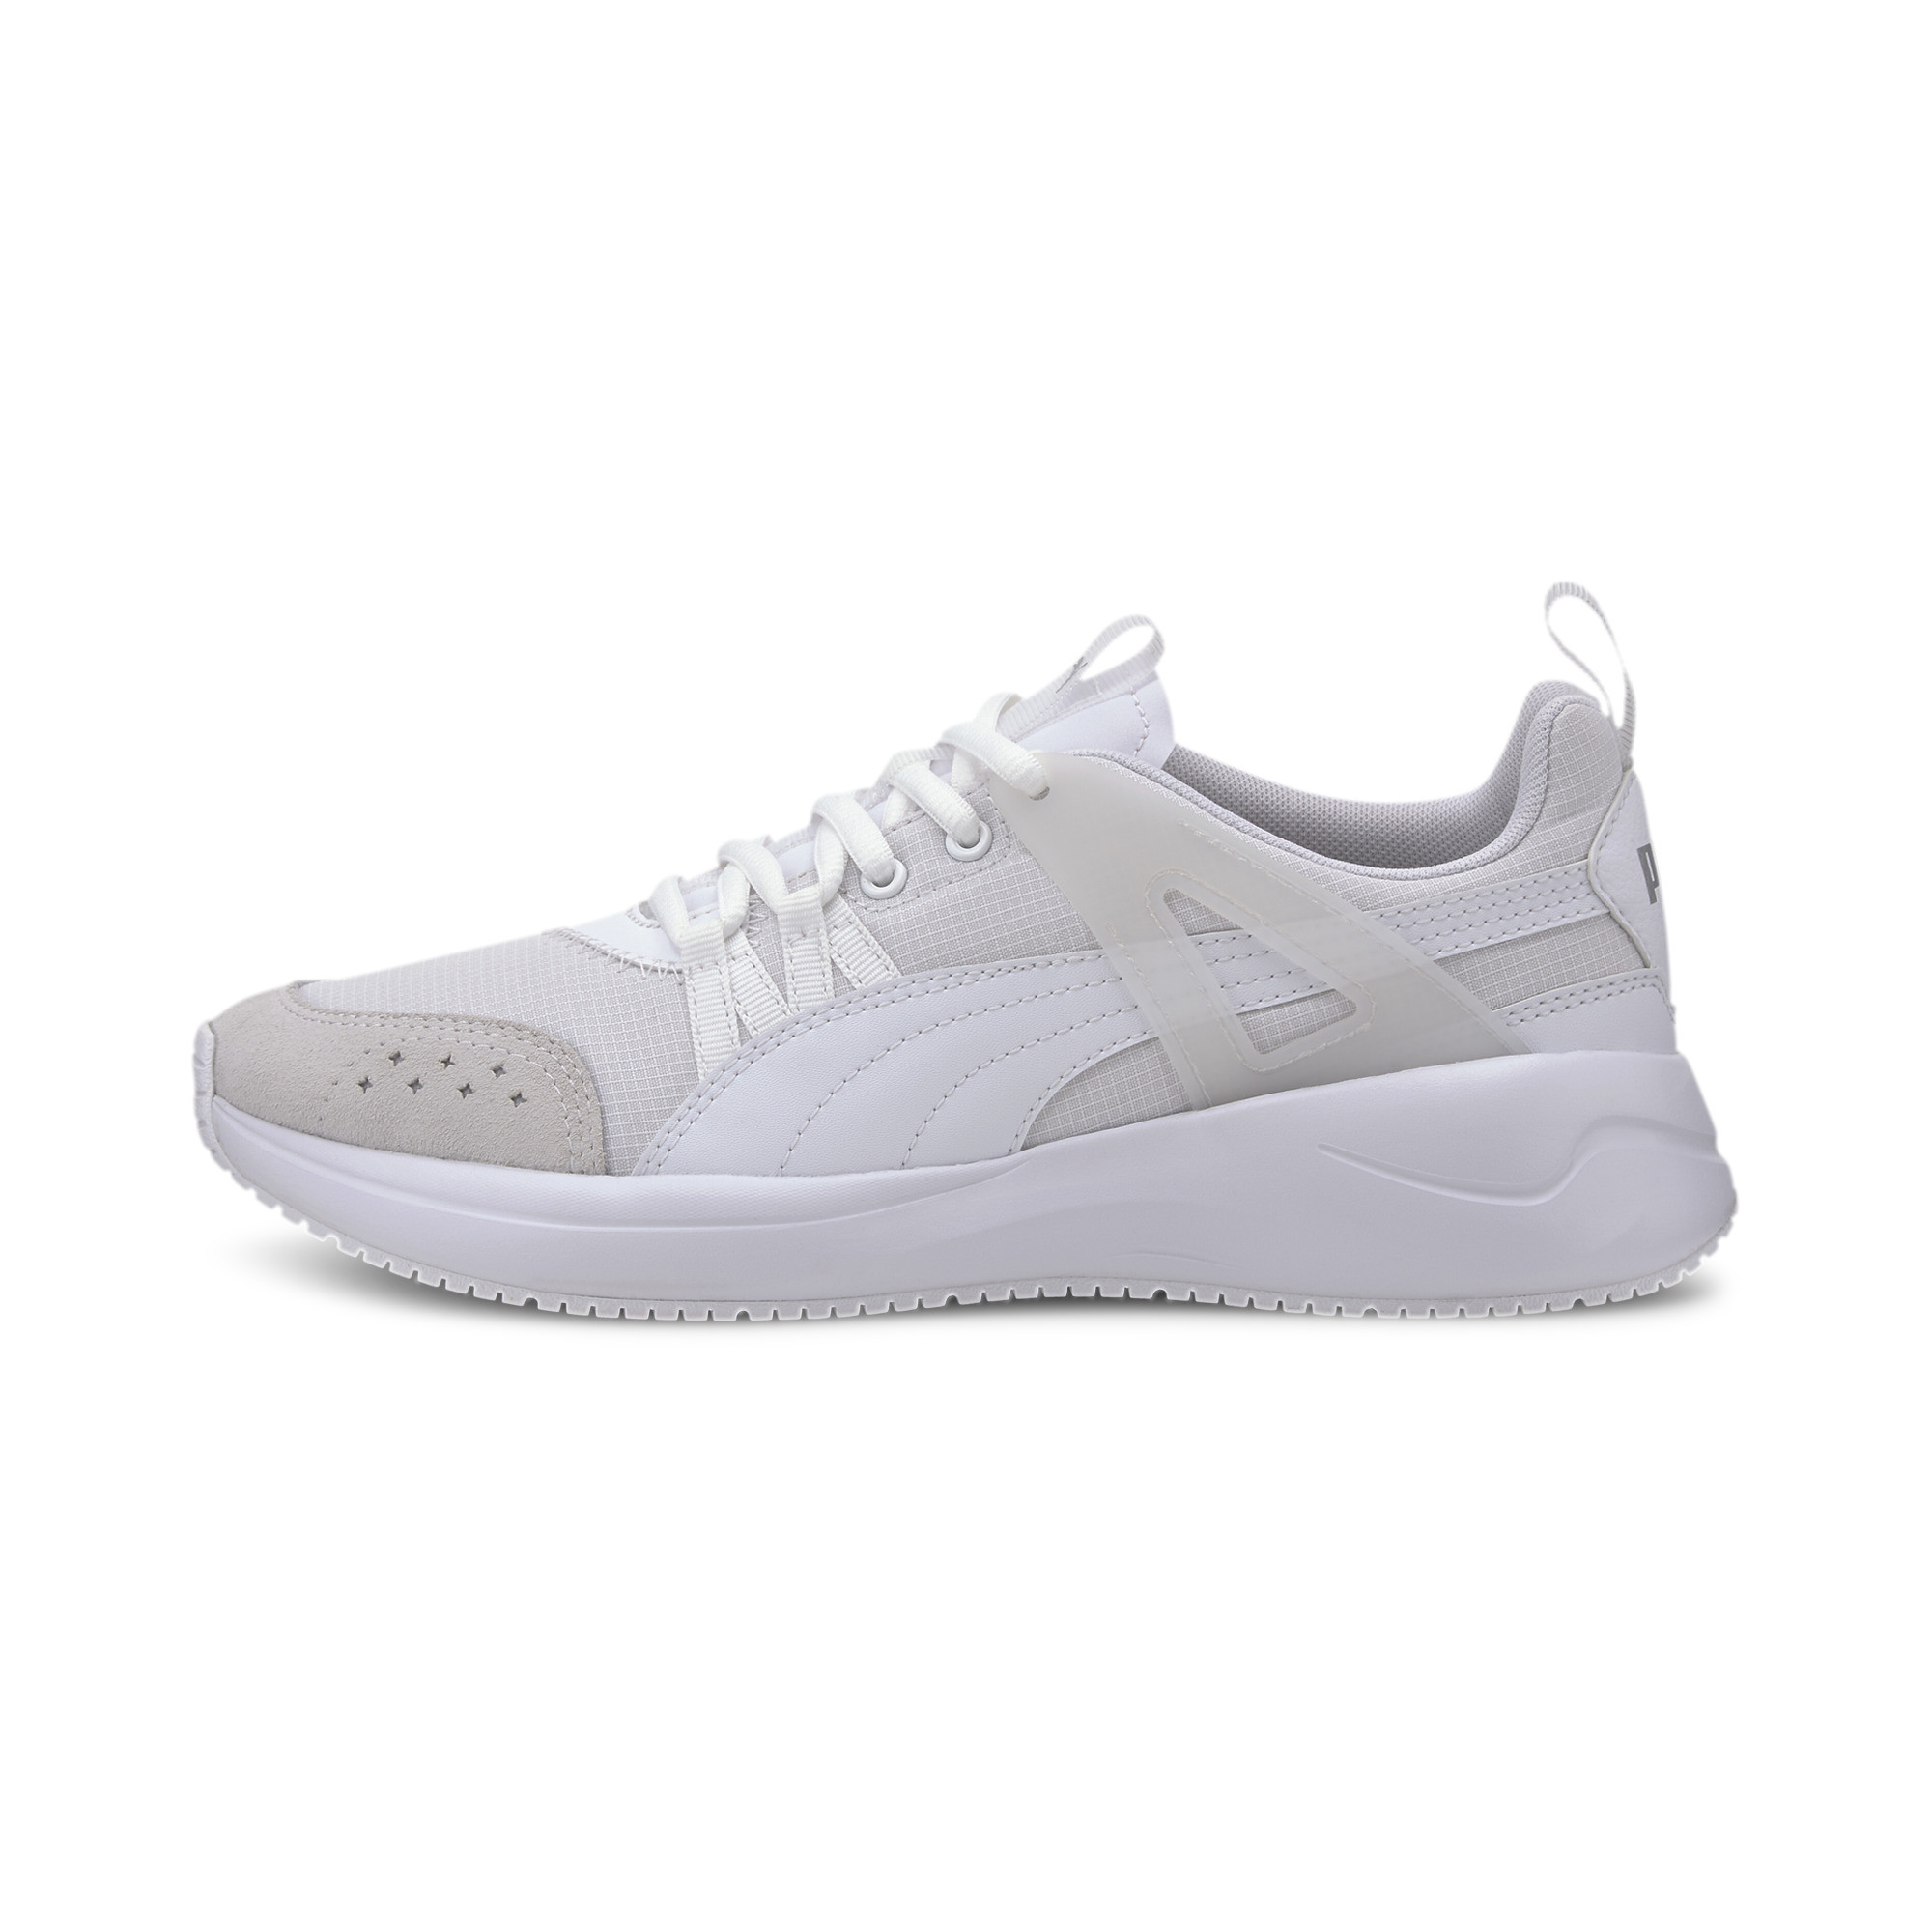 Nuage Run Cage Women's Sneakers